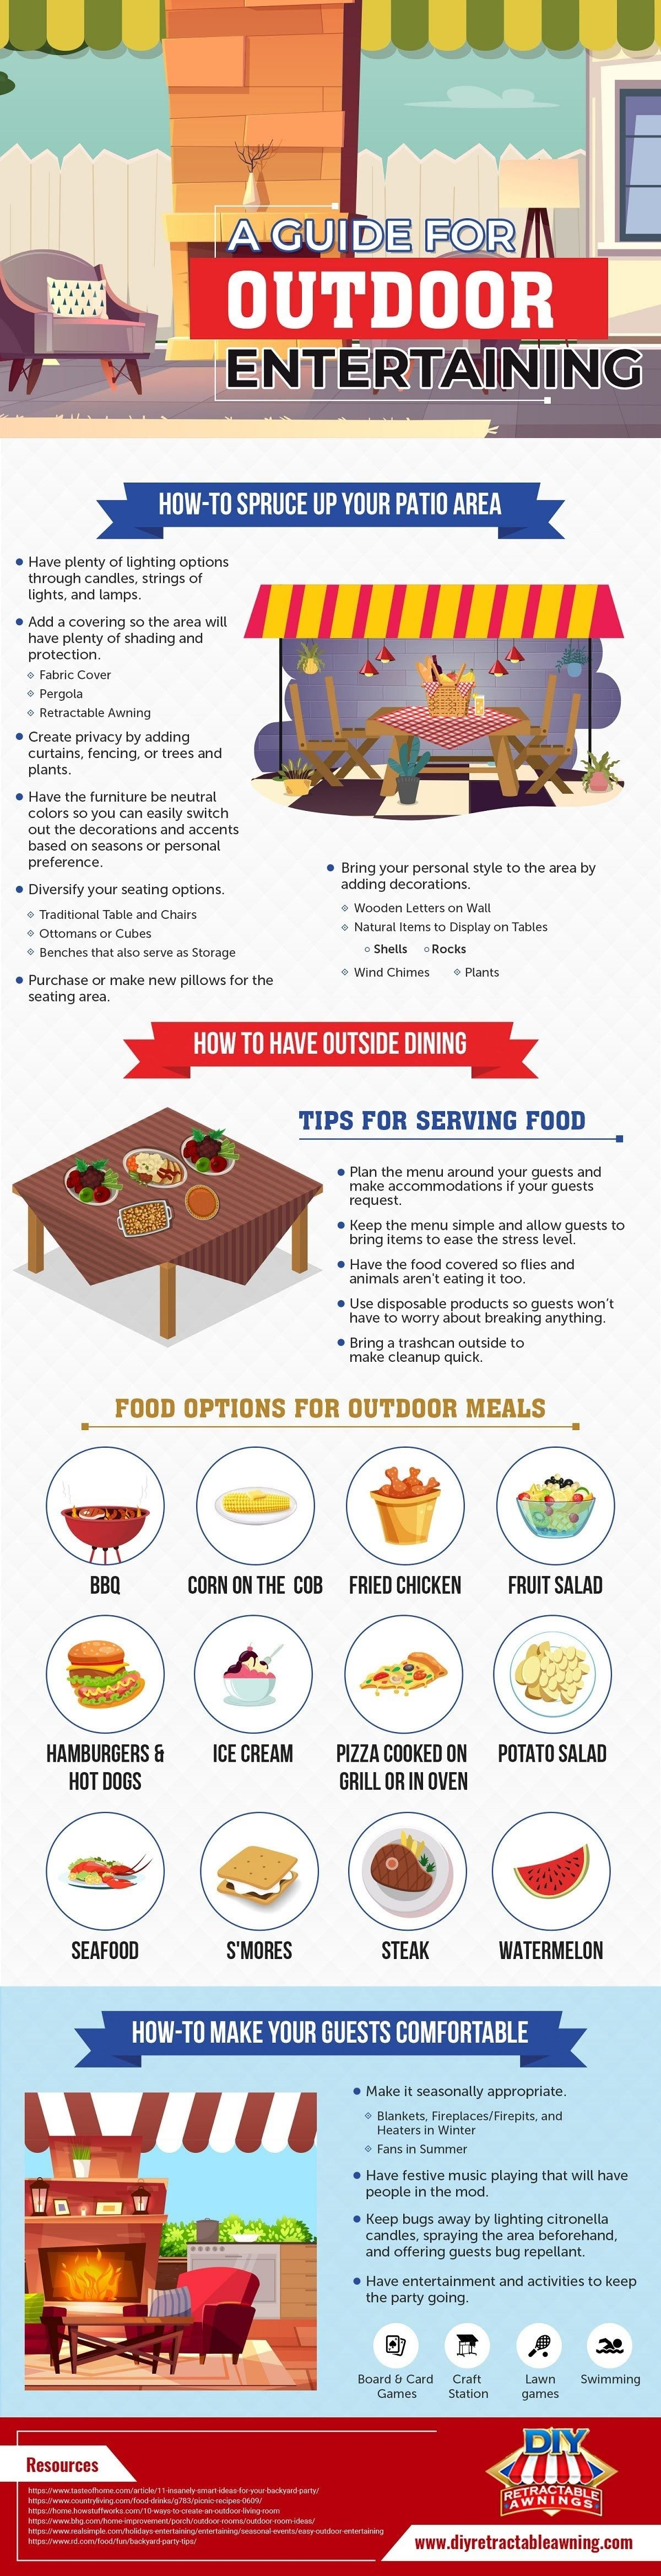 A Guide For Outdoor Entertaining #infographic